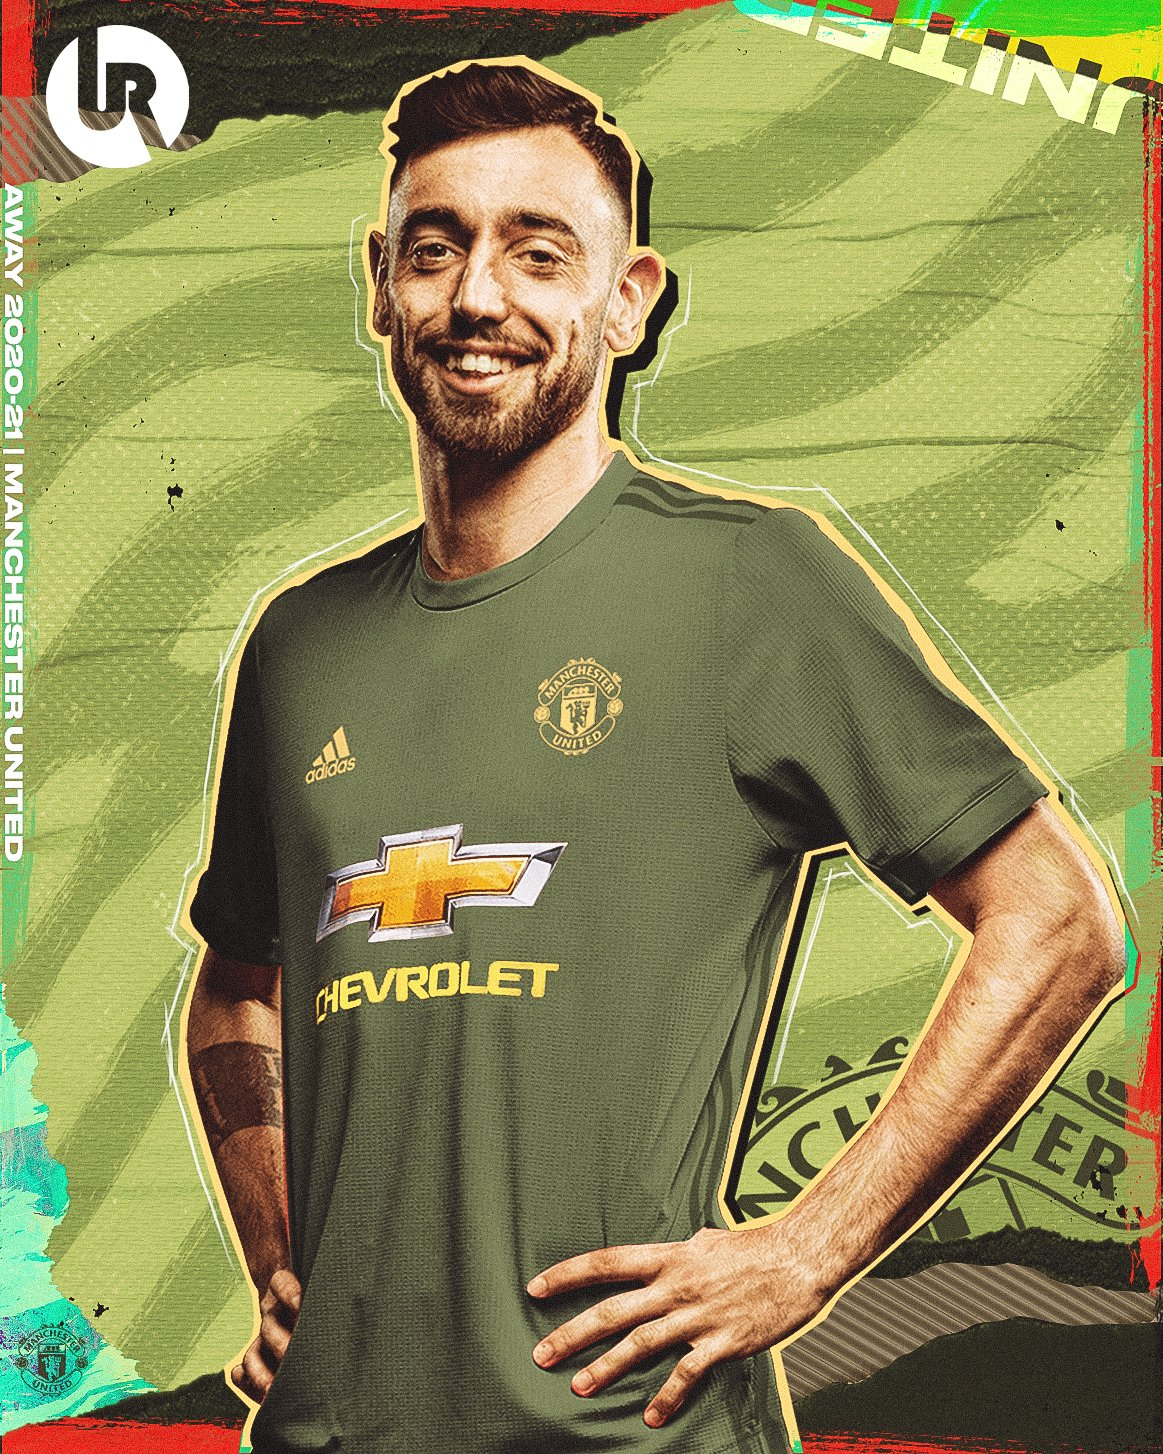 Utdreport On Twitter Manchester United S Rumoured 2020 21 Kits Are Set To Bring The Dazzle